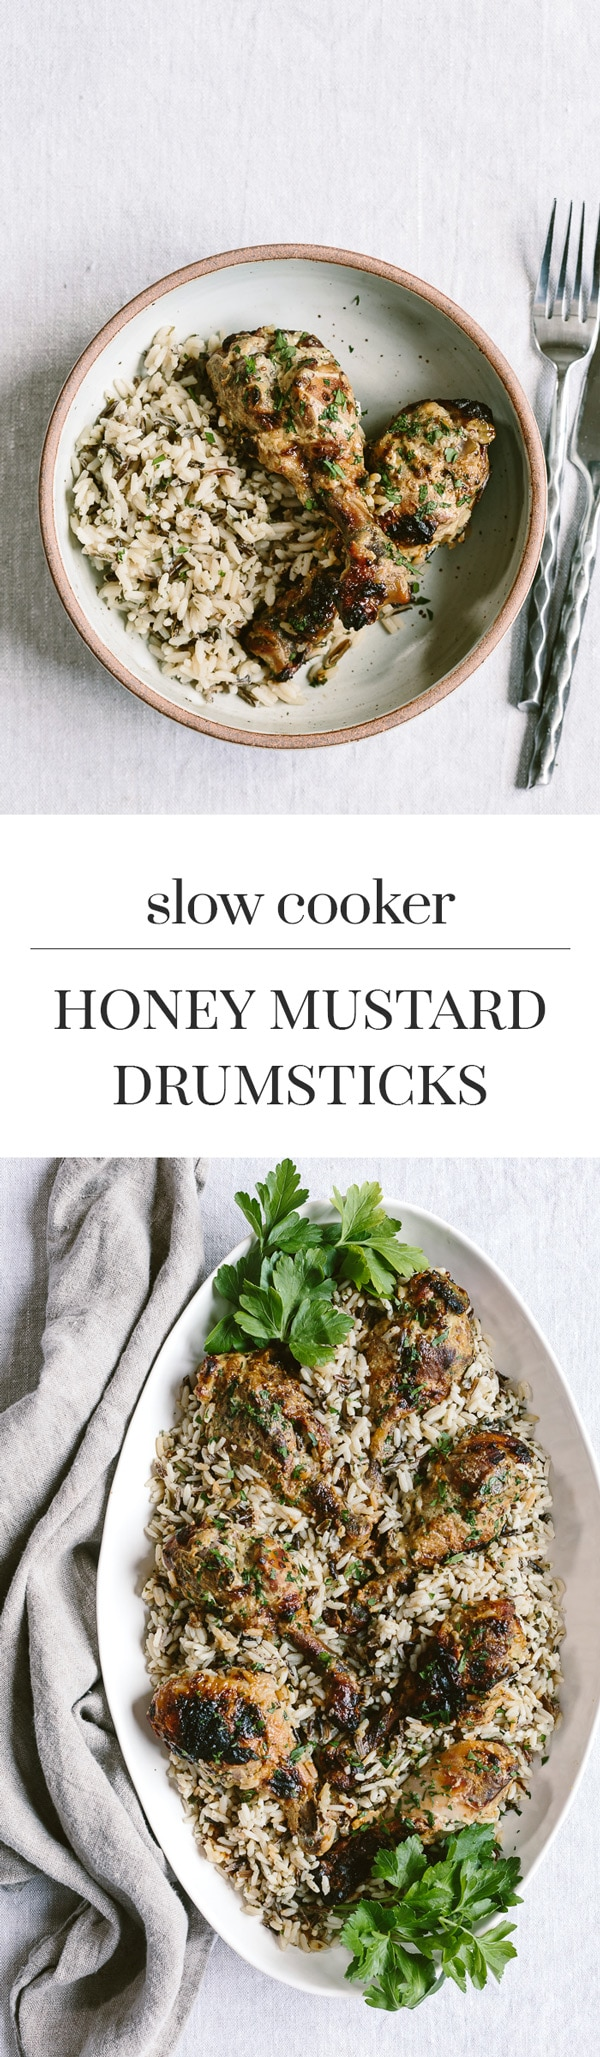 Slow Cooker Honey Mustard Drumsticks: A delicious crock-pot honey-mustard chicken drumsticks recipe.